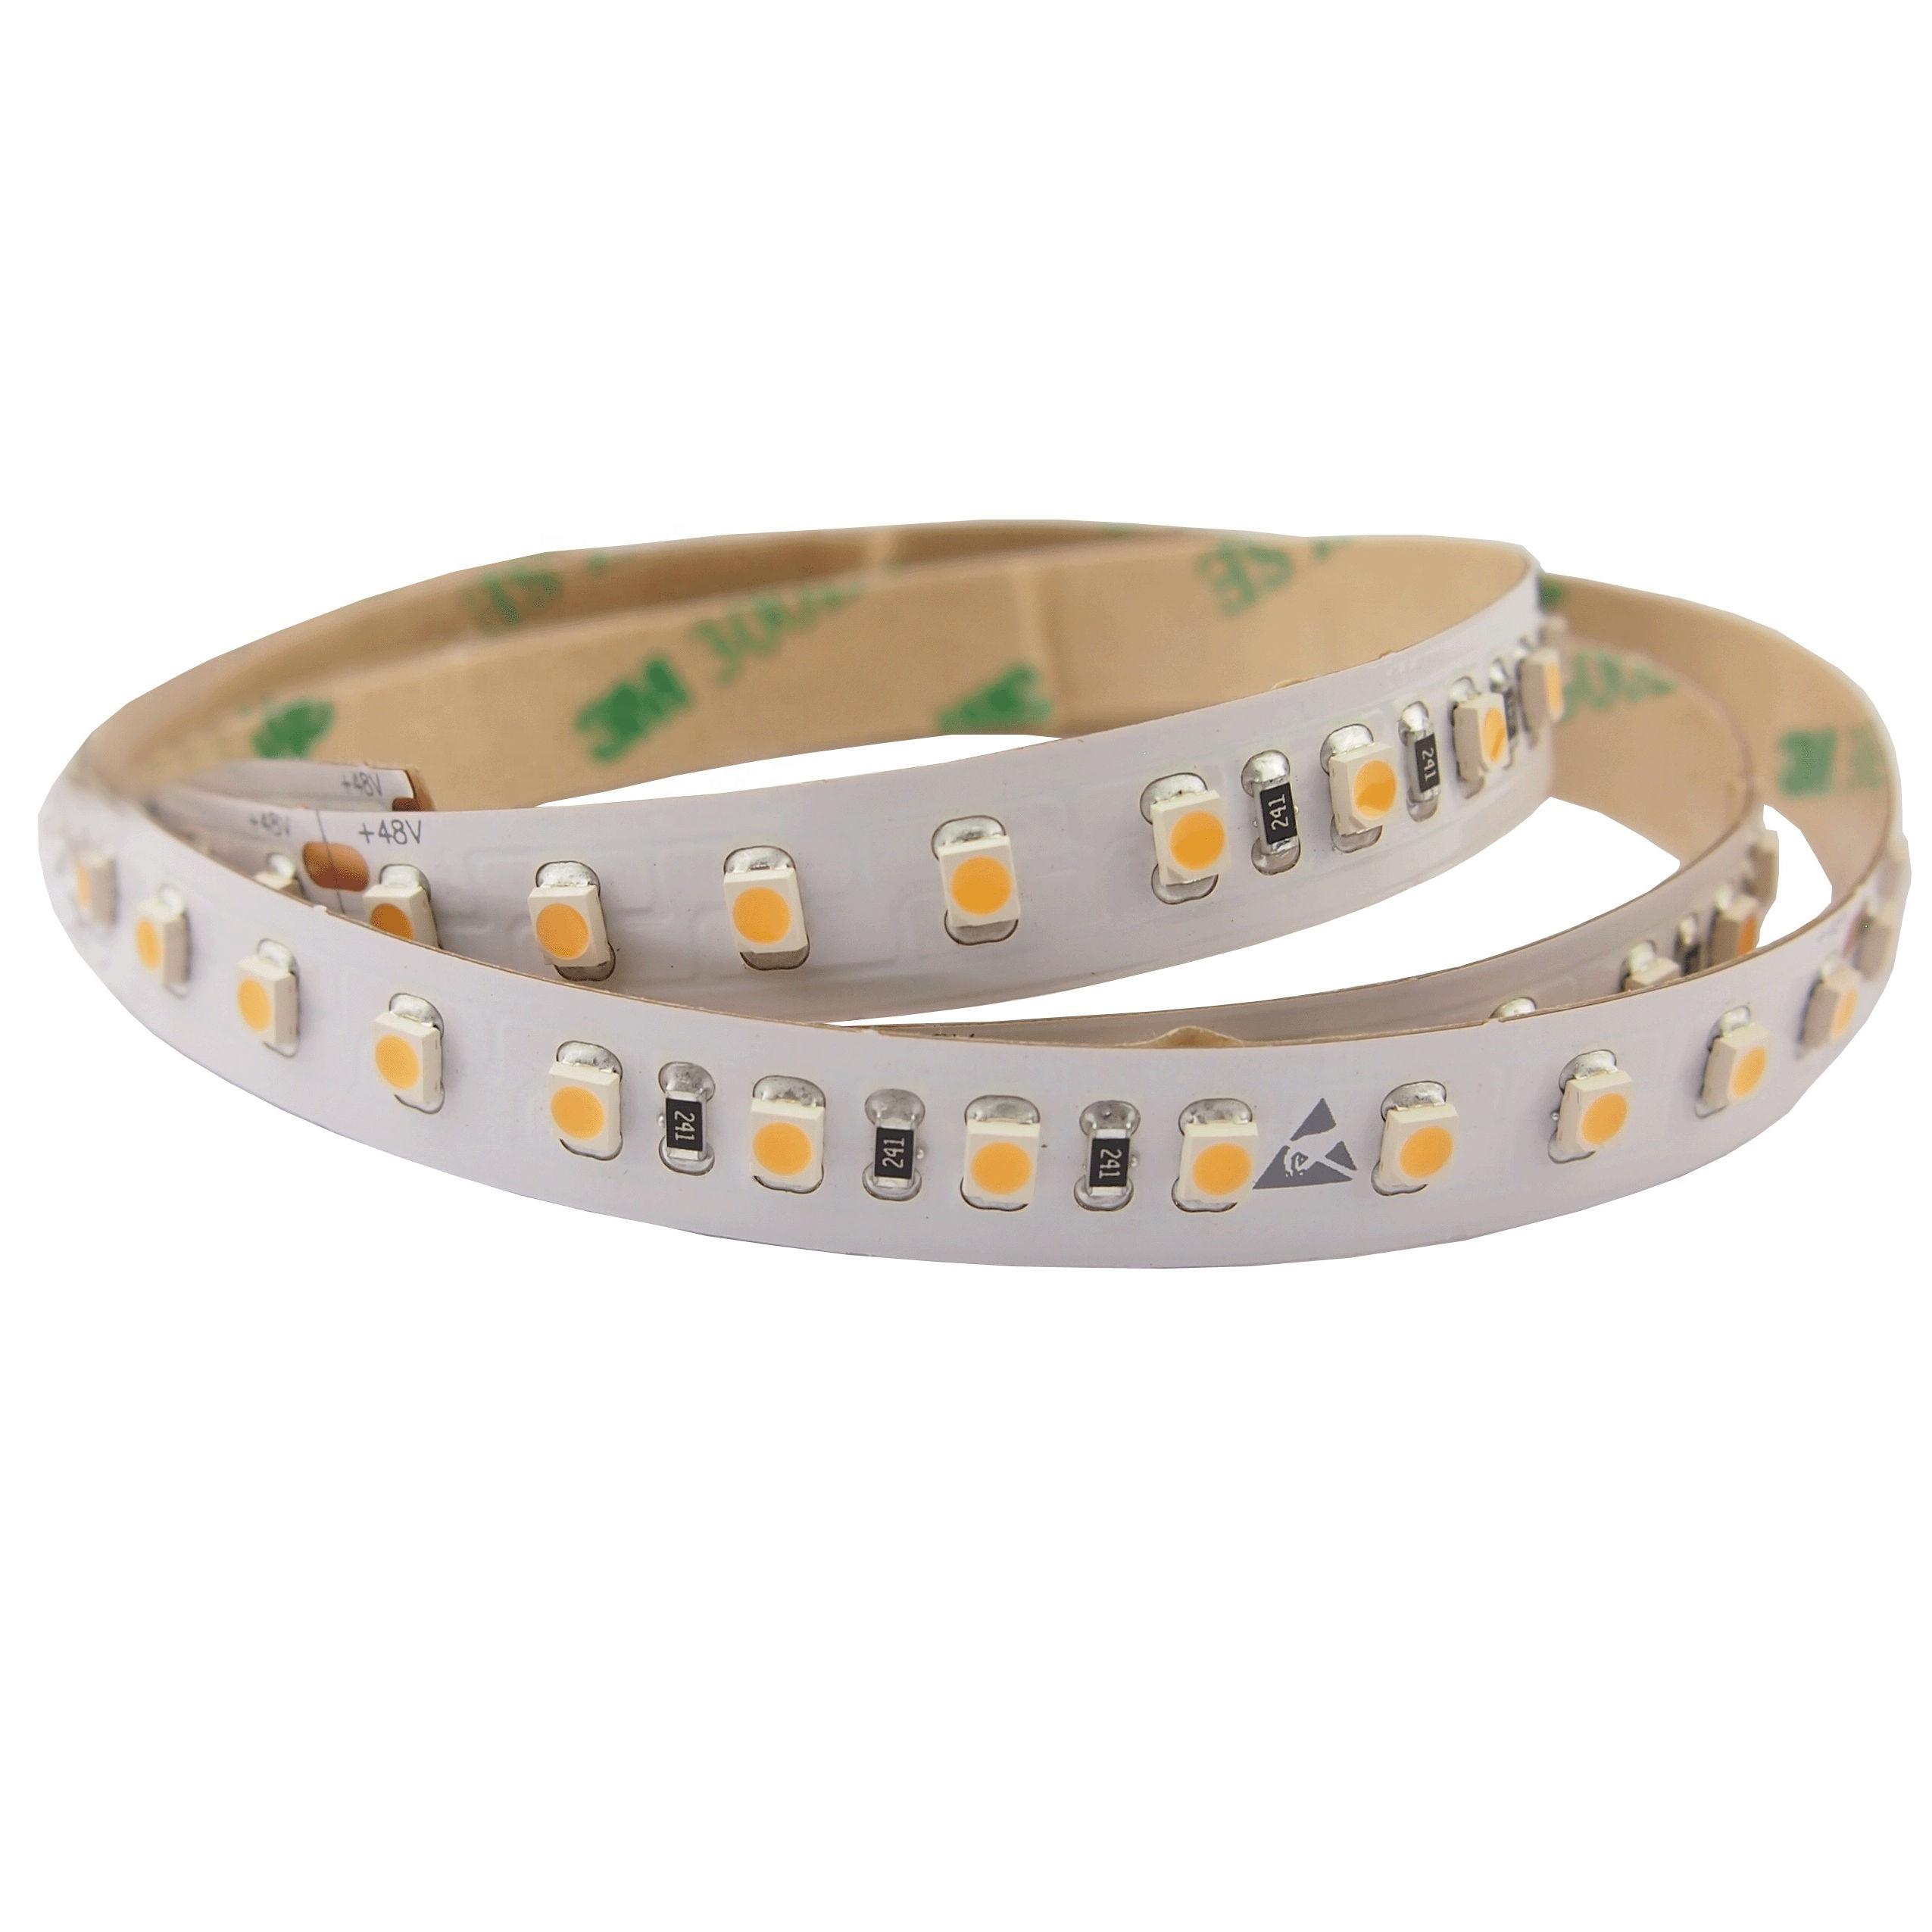 color uniform smd3528 smd2835 DC48V led strips long 30m no brightness loss high cri